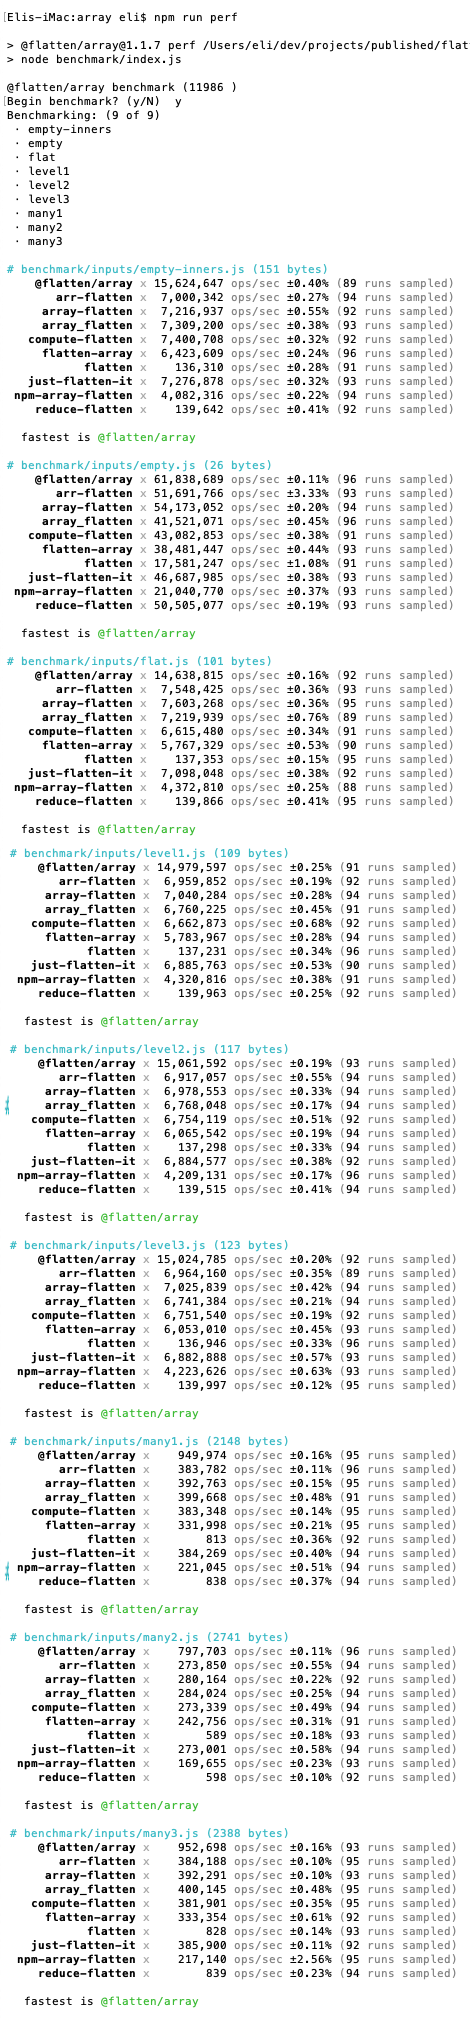 Show performance comparison with various inputs for this implementation, array-flatten, and flatten-array.